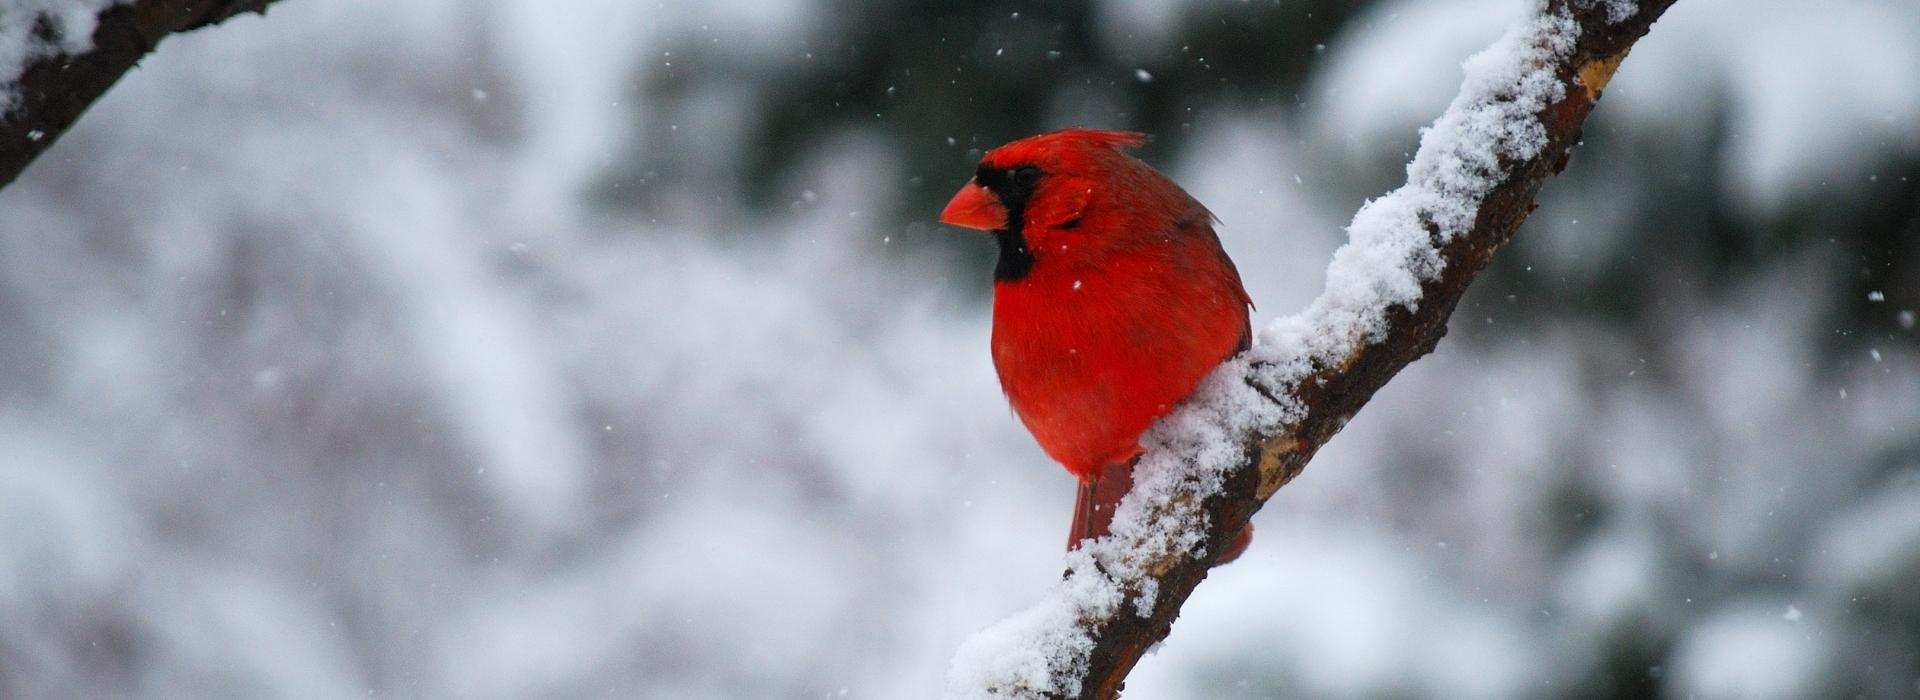 A cardinal rests on a tree branch in this winter scene - red feathers standing out vibrantly from the winter snow.